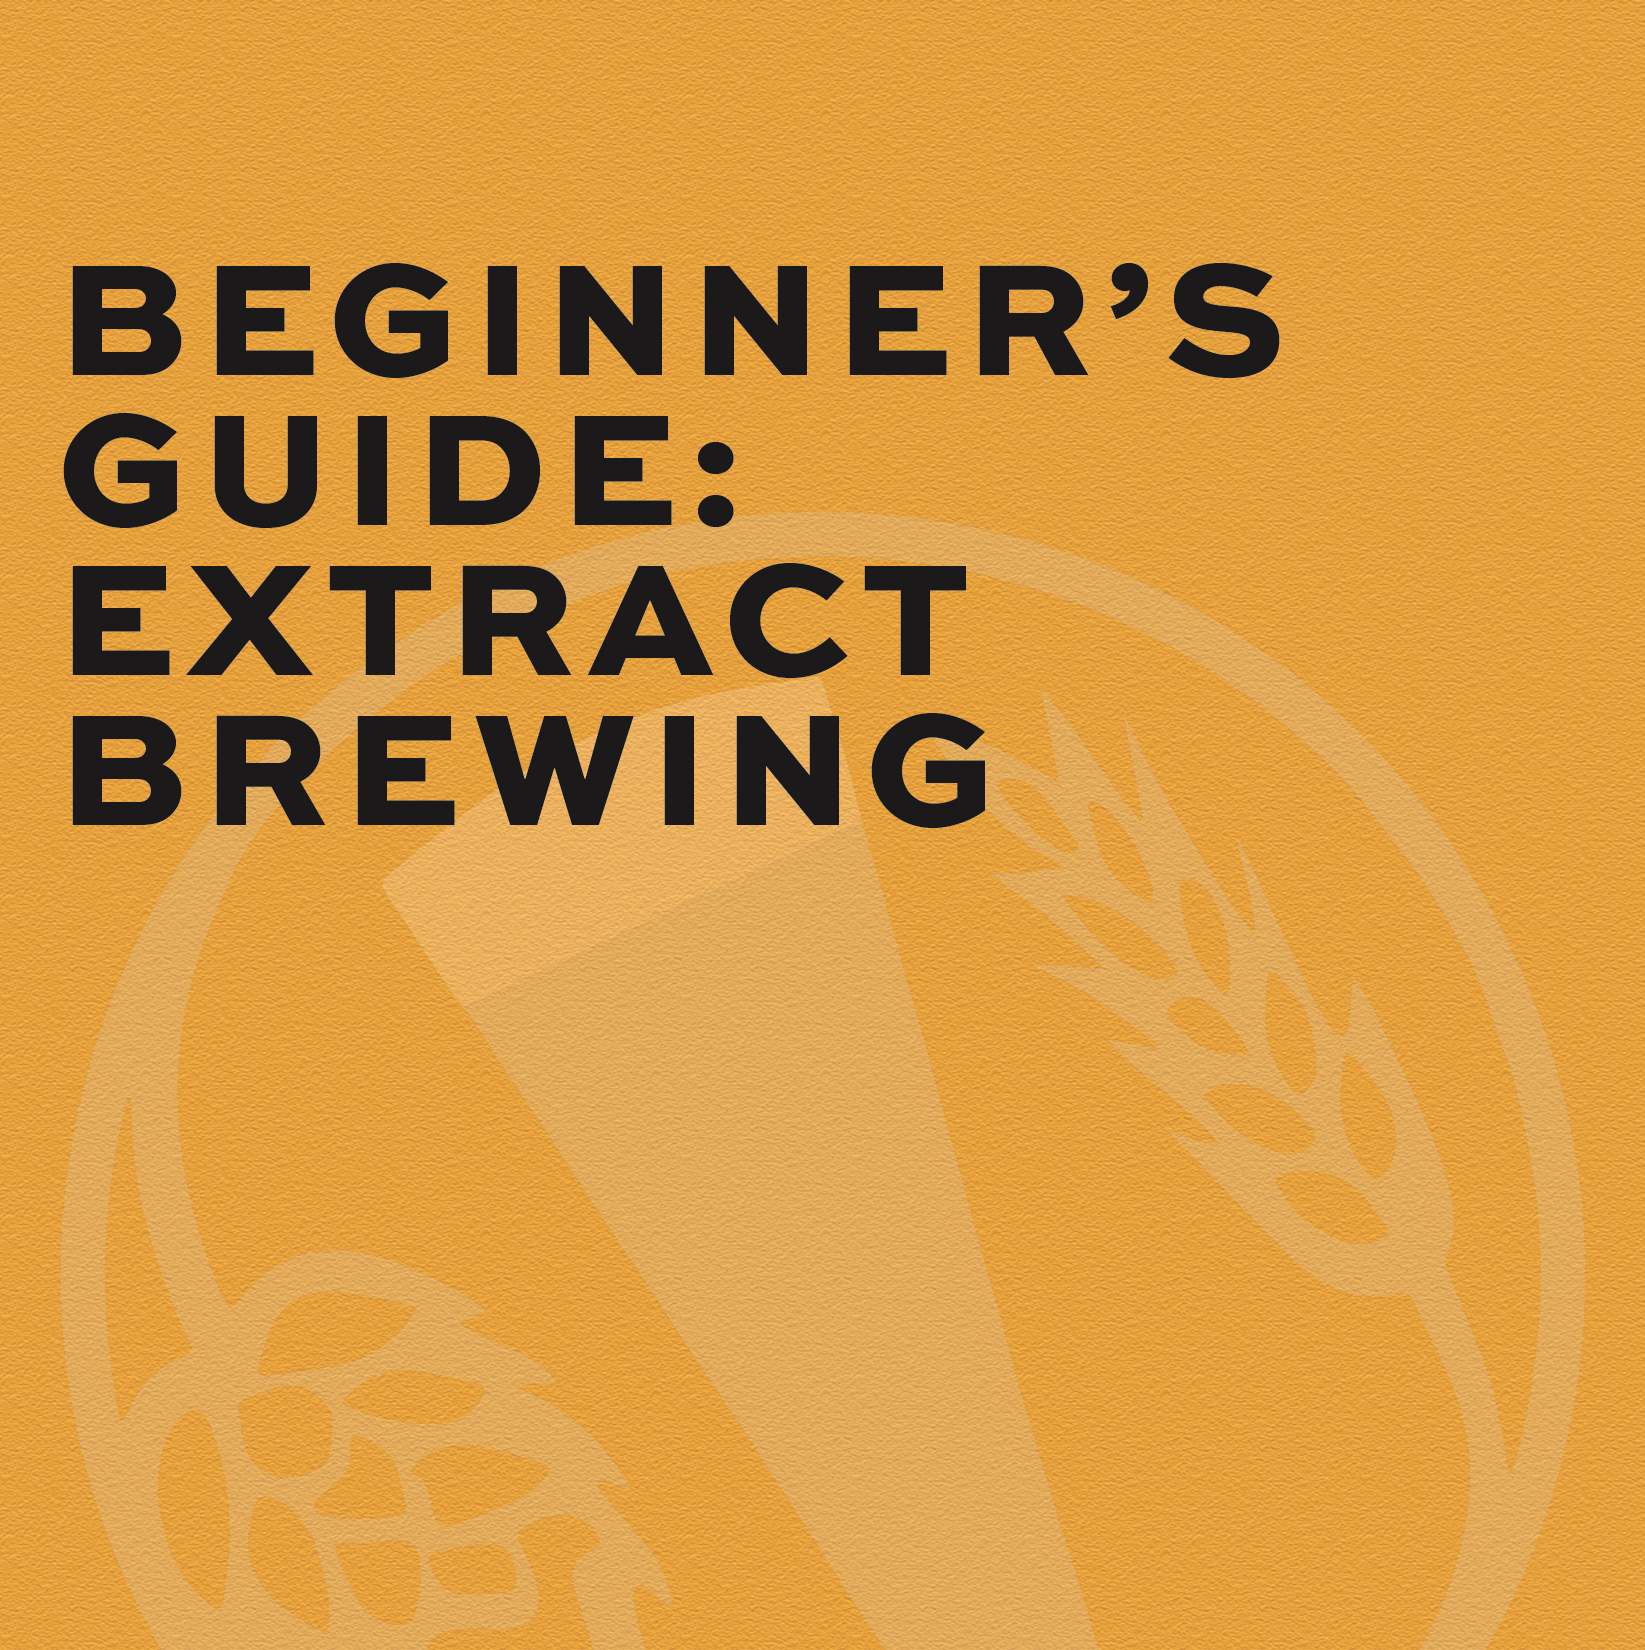 Beginner's Guide: Extract Brewing